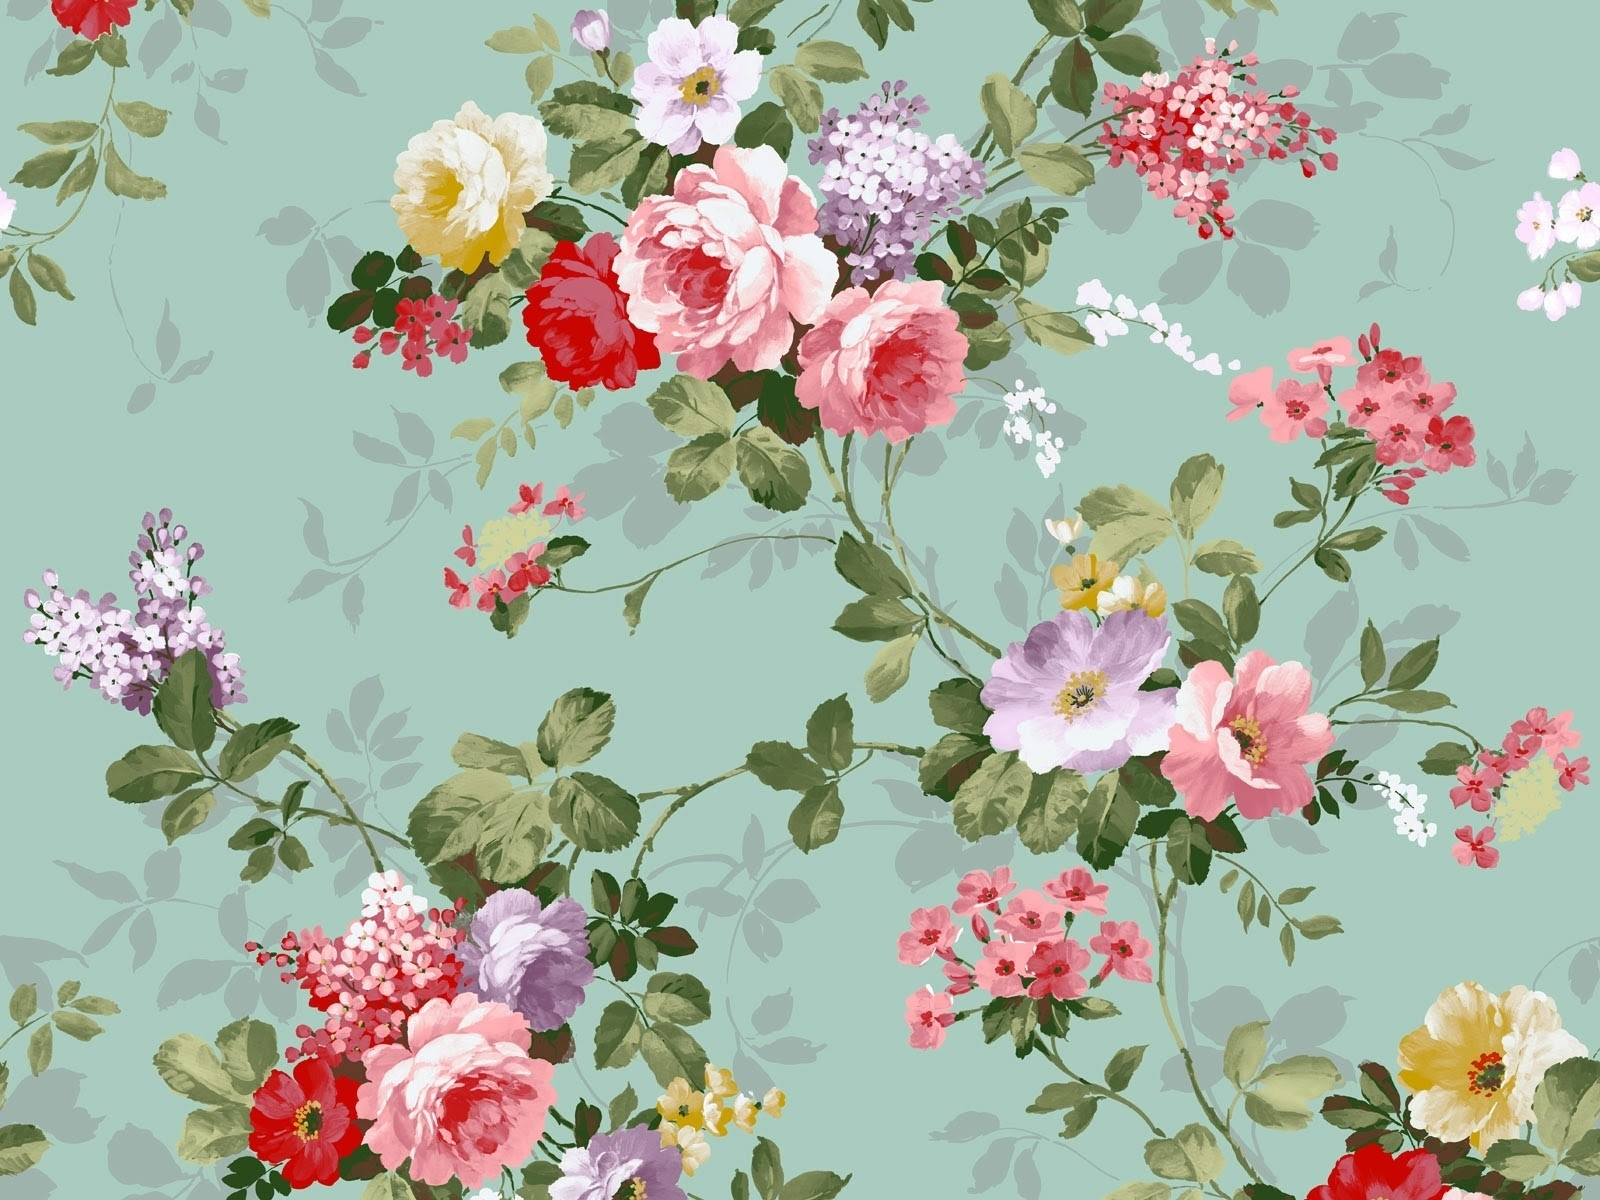 10 Latest Vintage Floral Wallpaper Desktop FULL HD 1080p For PC Desktop